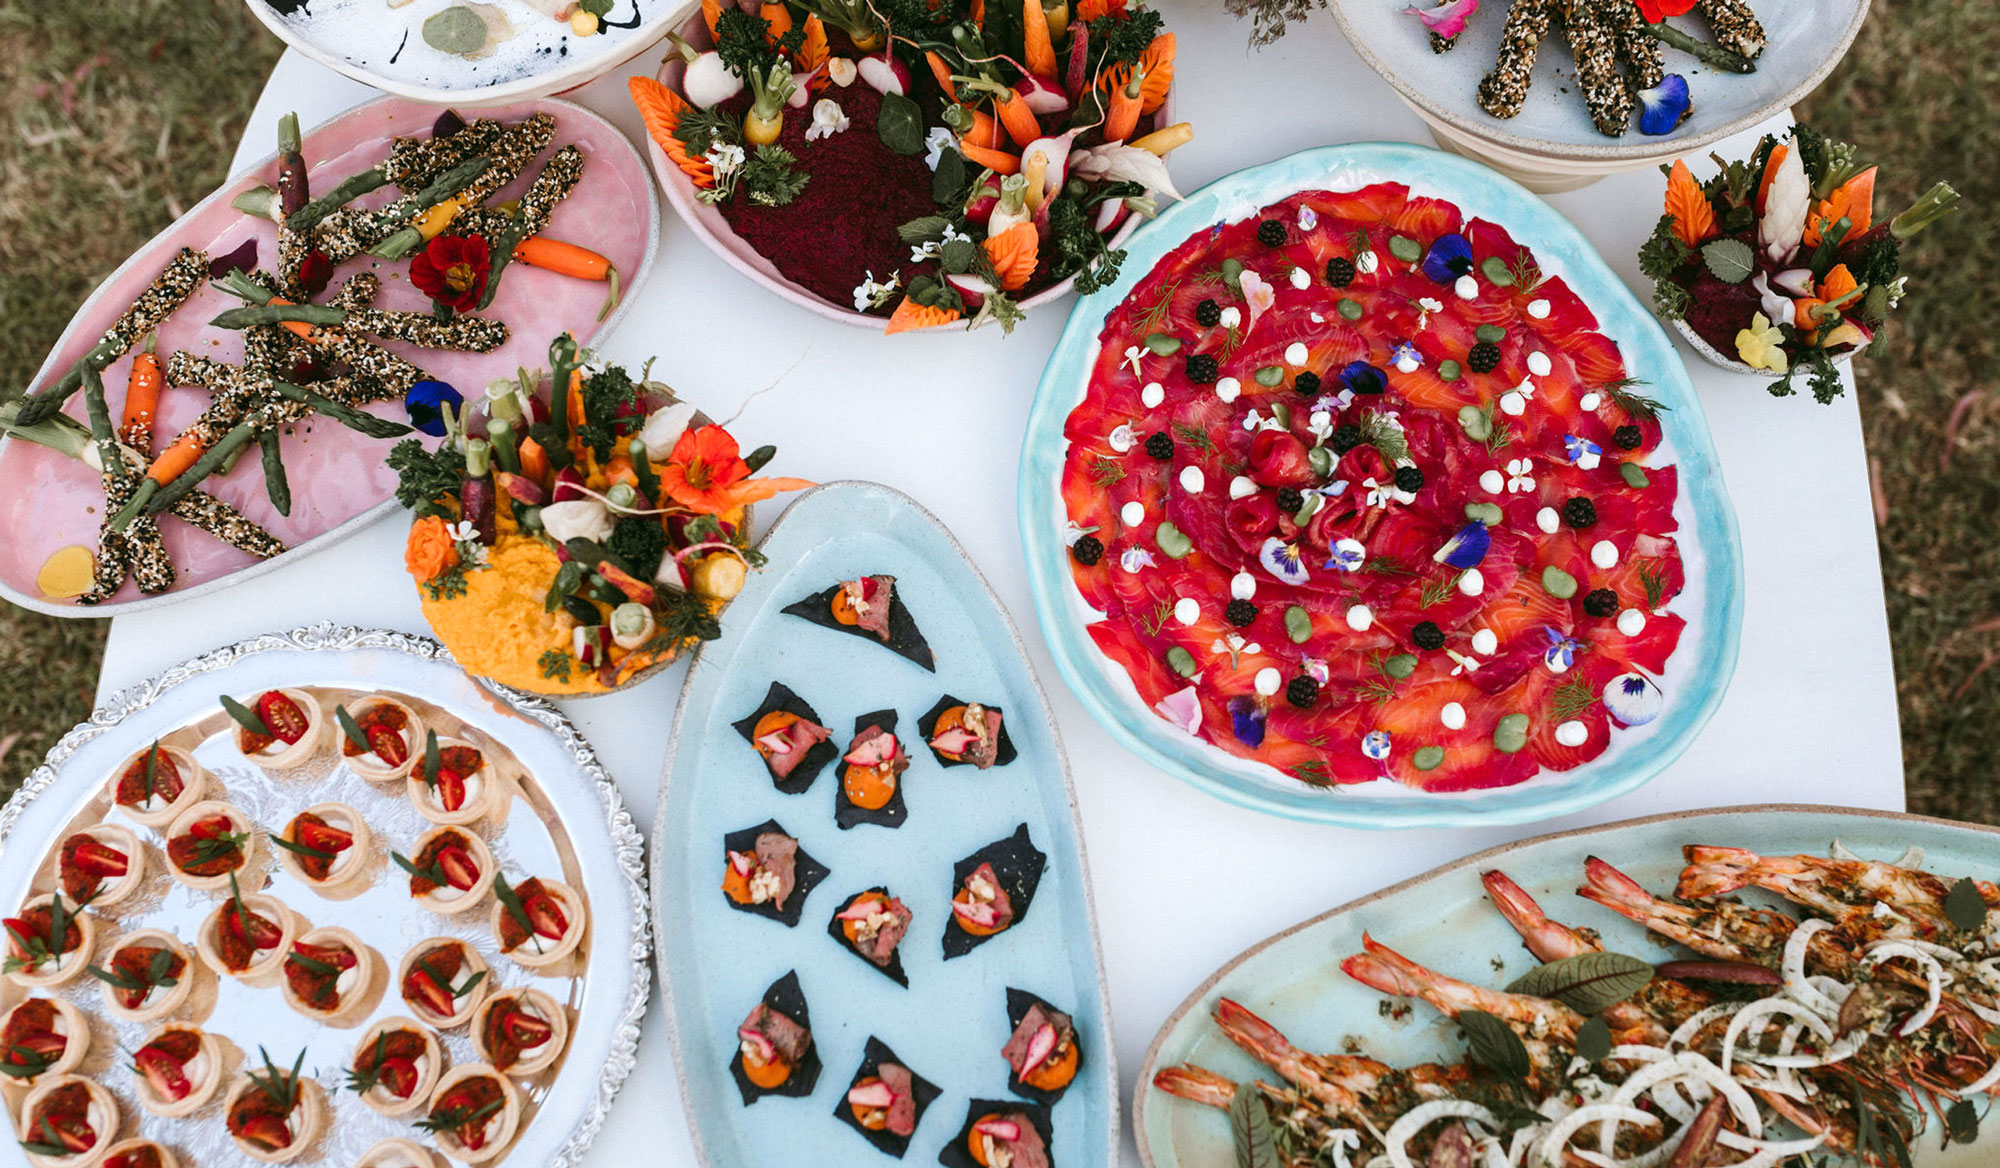 Finesse Catering Group | Catering Mornington Peninsula | Catering Melbourne | Caterers Mornington | Caterers Melbourne | Wedding Catering | Wedding Caterer | Event Catering | Event Caterer | Function Catering | Party Catering | Anniversary Catering | Corporate Catering | Group Catering